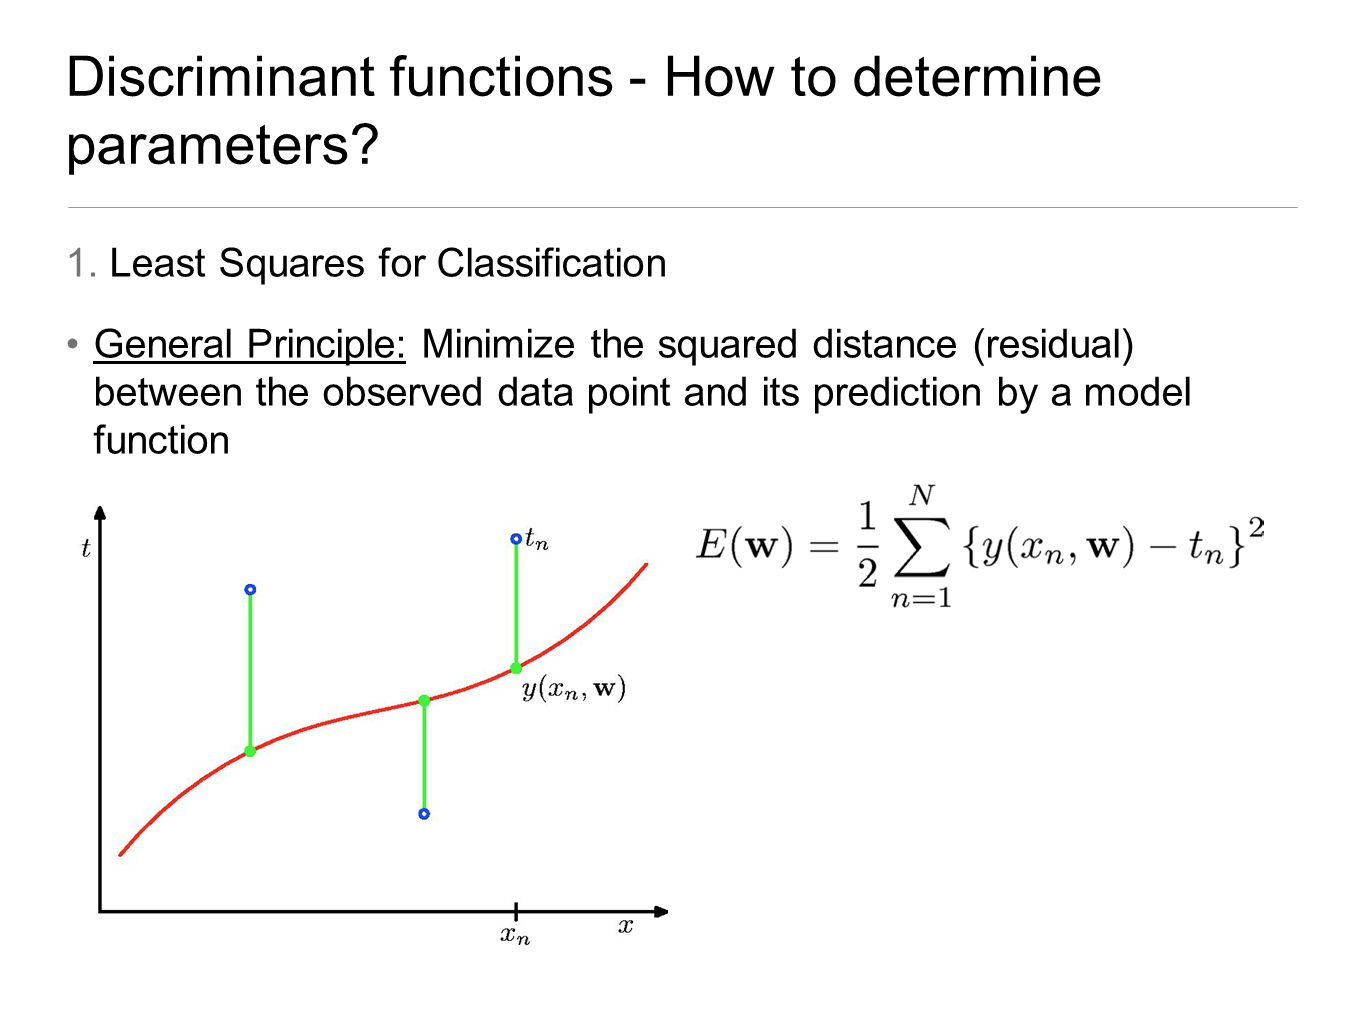 Discriminant functions - How to determine parameters